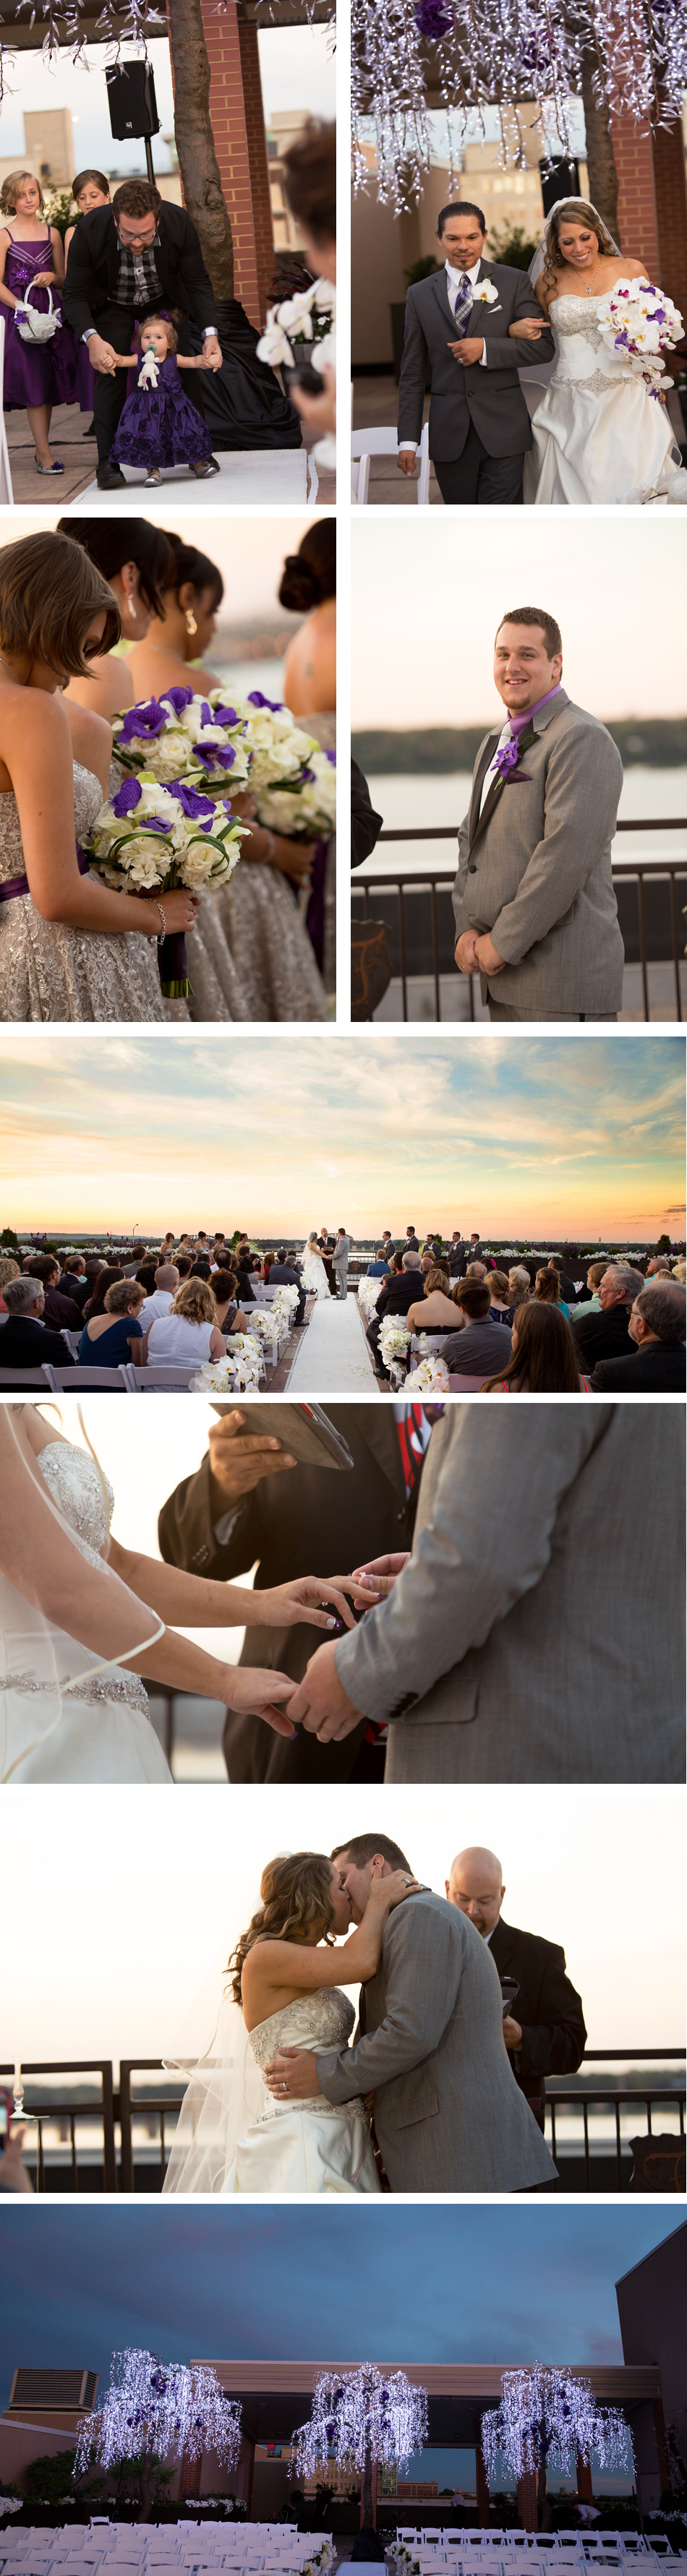 A rooftop ceremony at the Frazier Arms Museum at sunset.